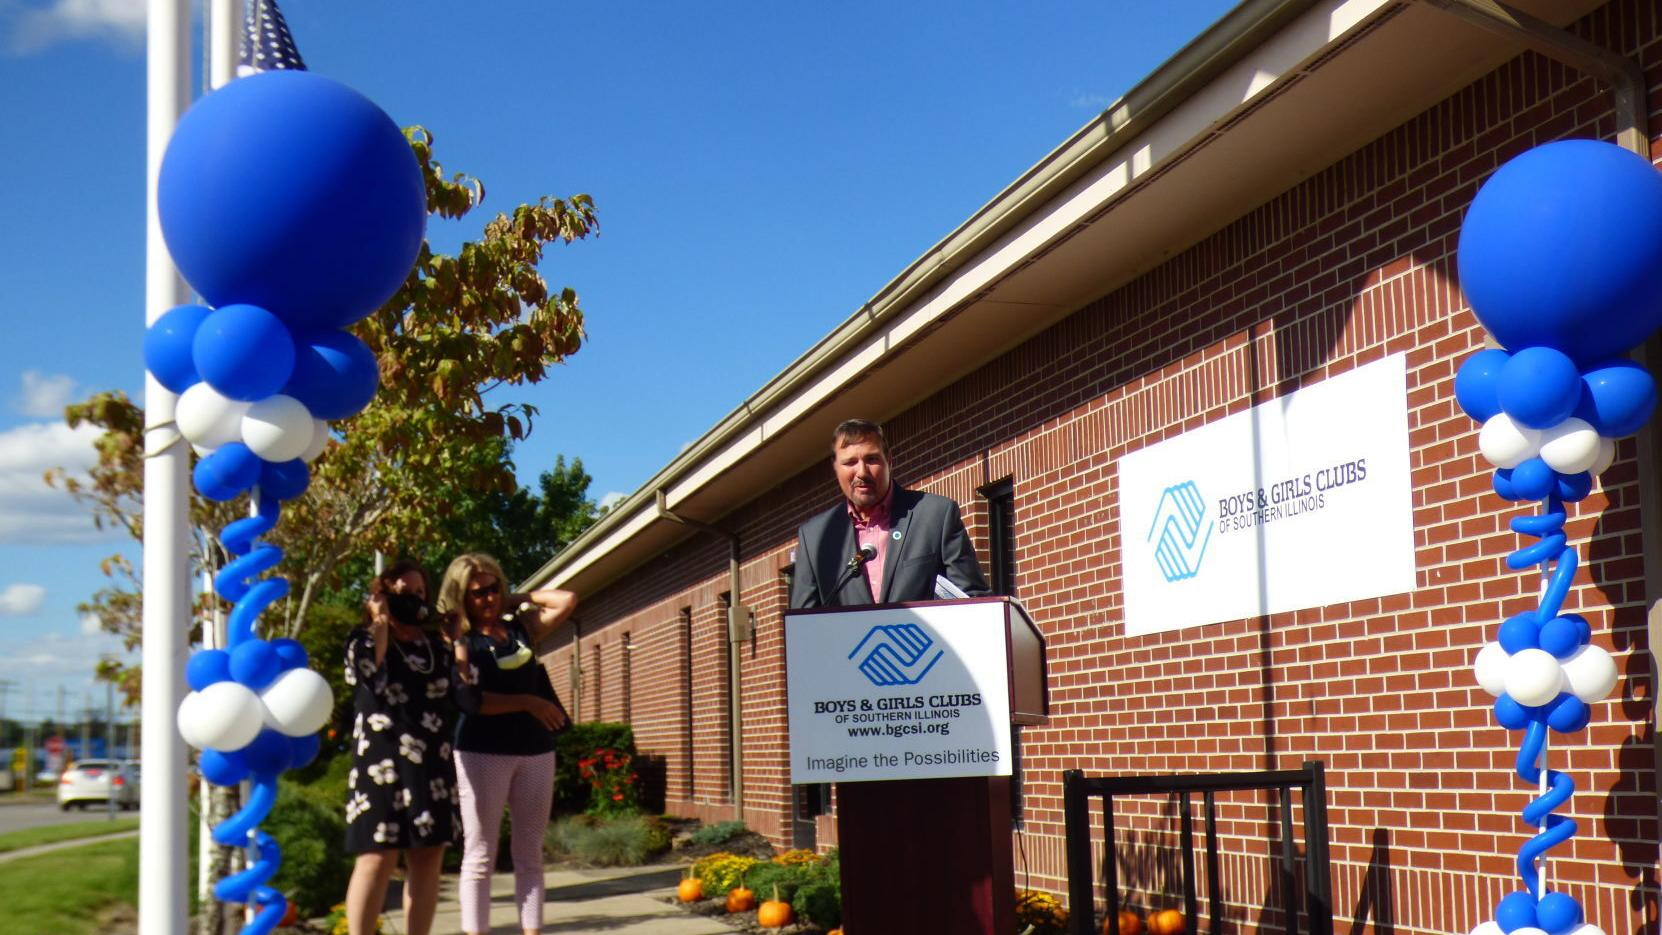 Boys and Girls Club of Southern Illinois Opening